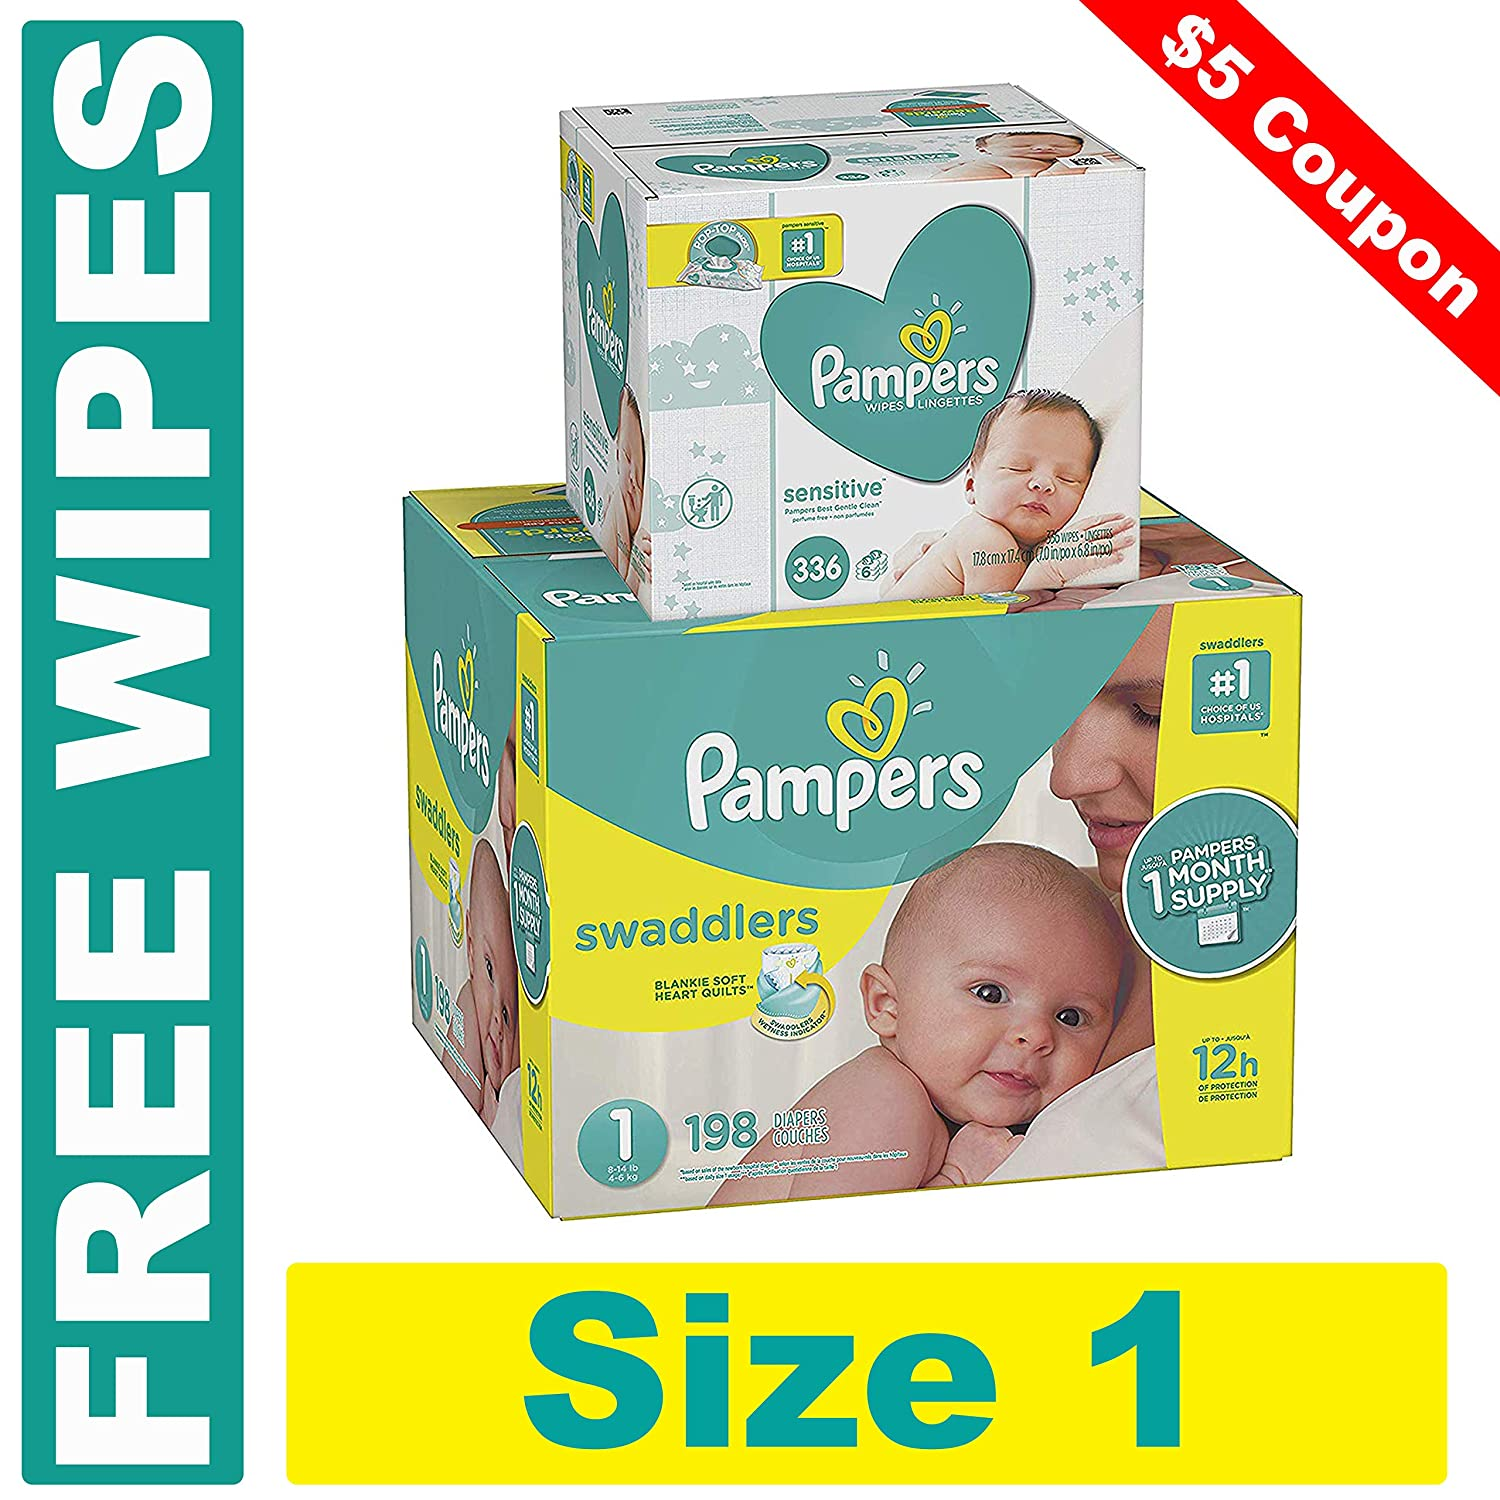 Pampers Swaddlers Disposable Baby Diapers Size 4, 150 Count and Baby Wipes Sensitive  Pop-Top Packs, 336 Count PLUS LIMITED TIME FREE BONUS WIPES